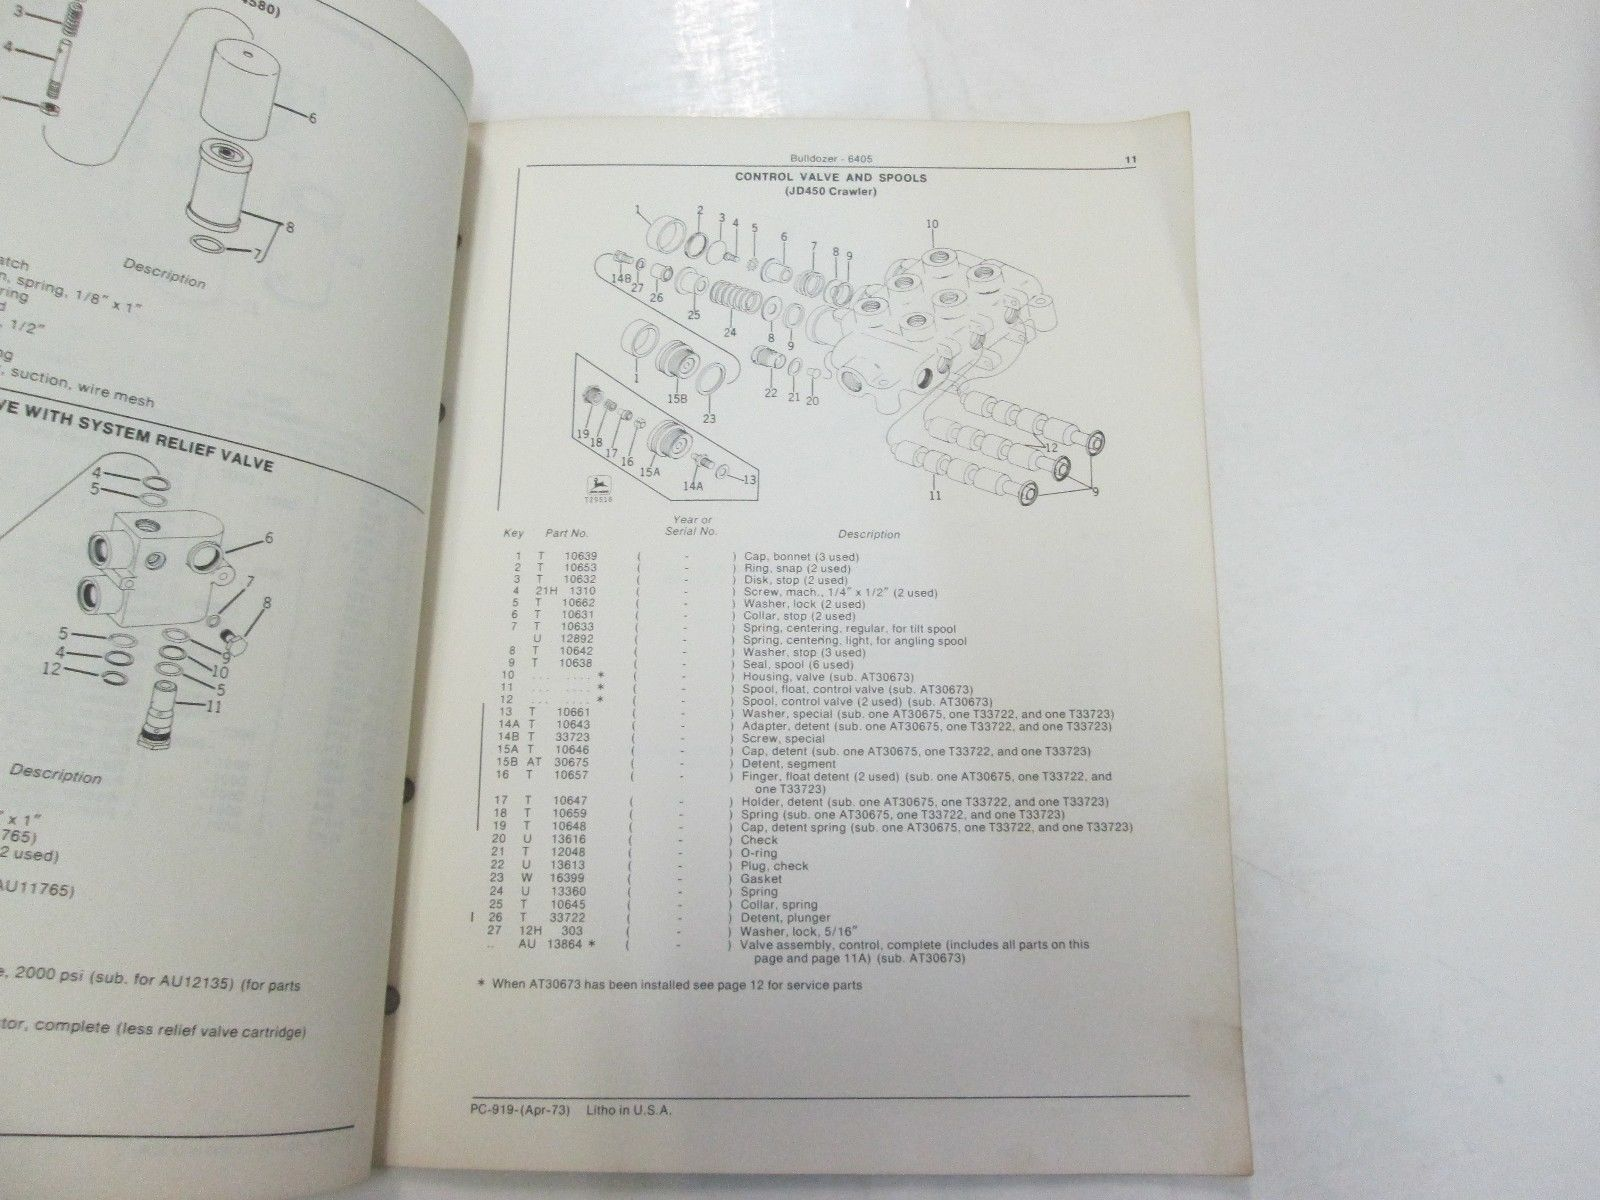 John Deere 6405 Bulldozer Parts Catalog and 28 similar items